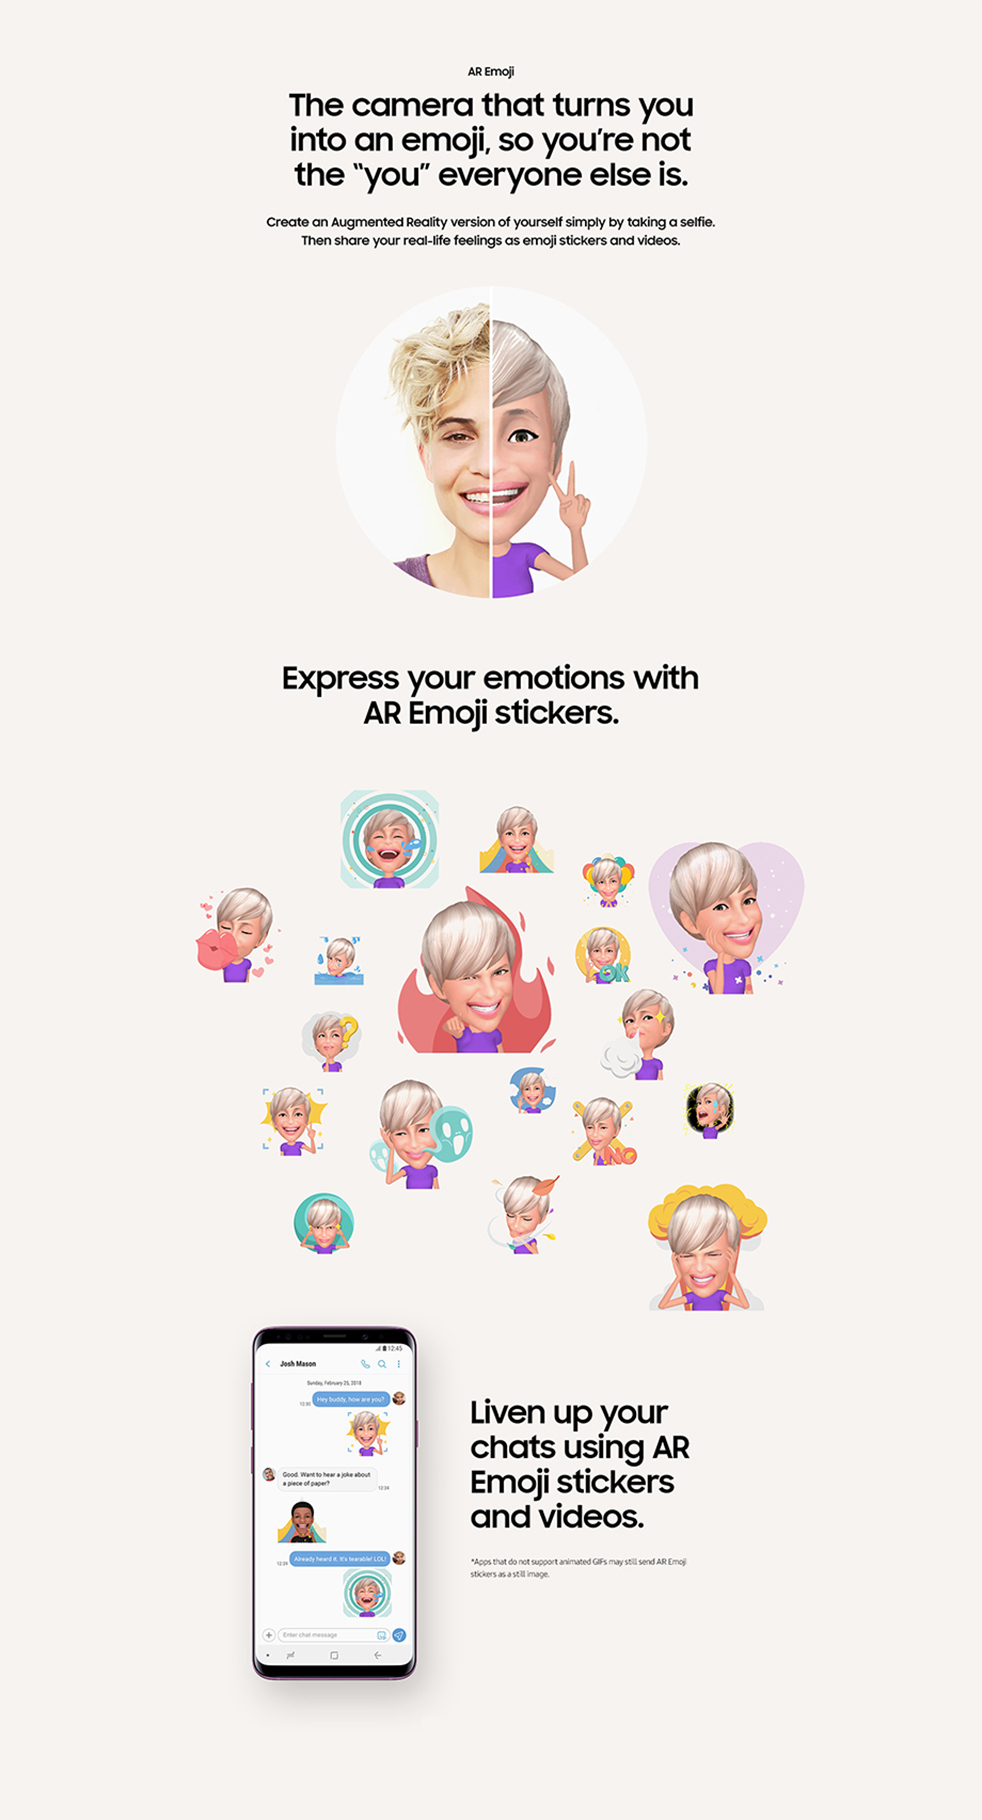 Galaxy S9 - Revolutionary Camera - The camera that turns you into an emoji.